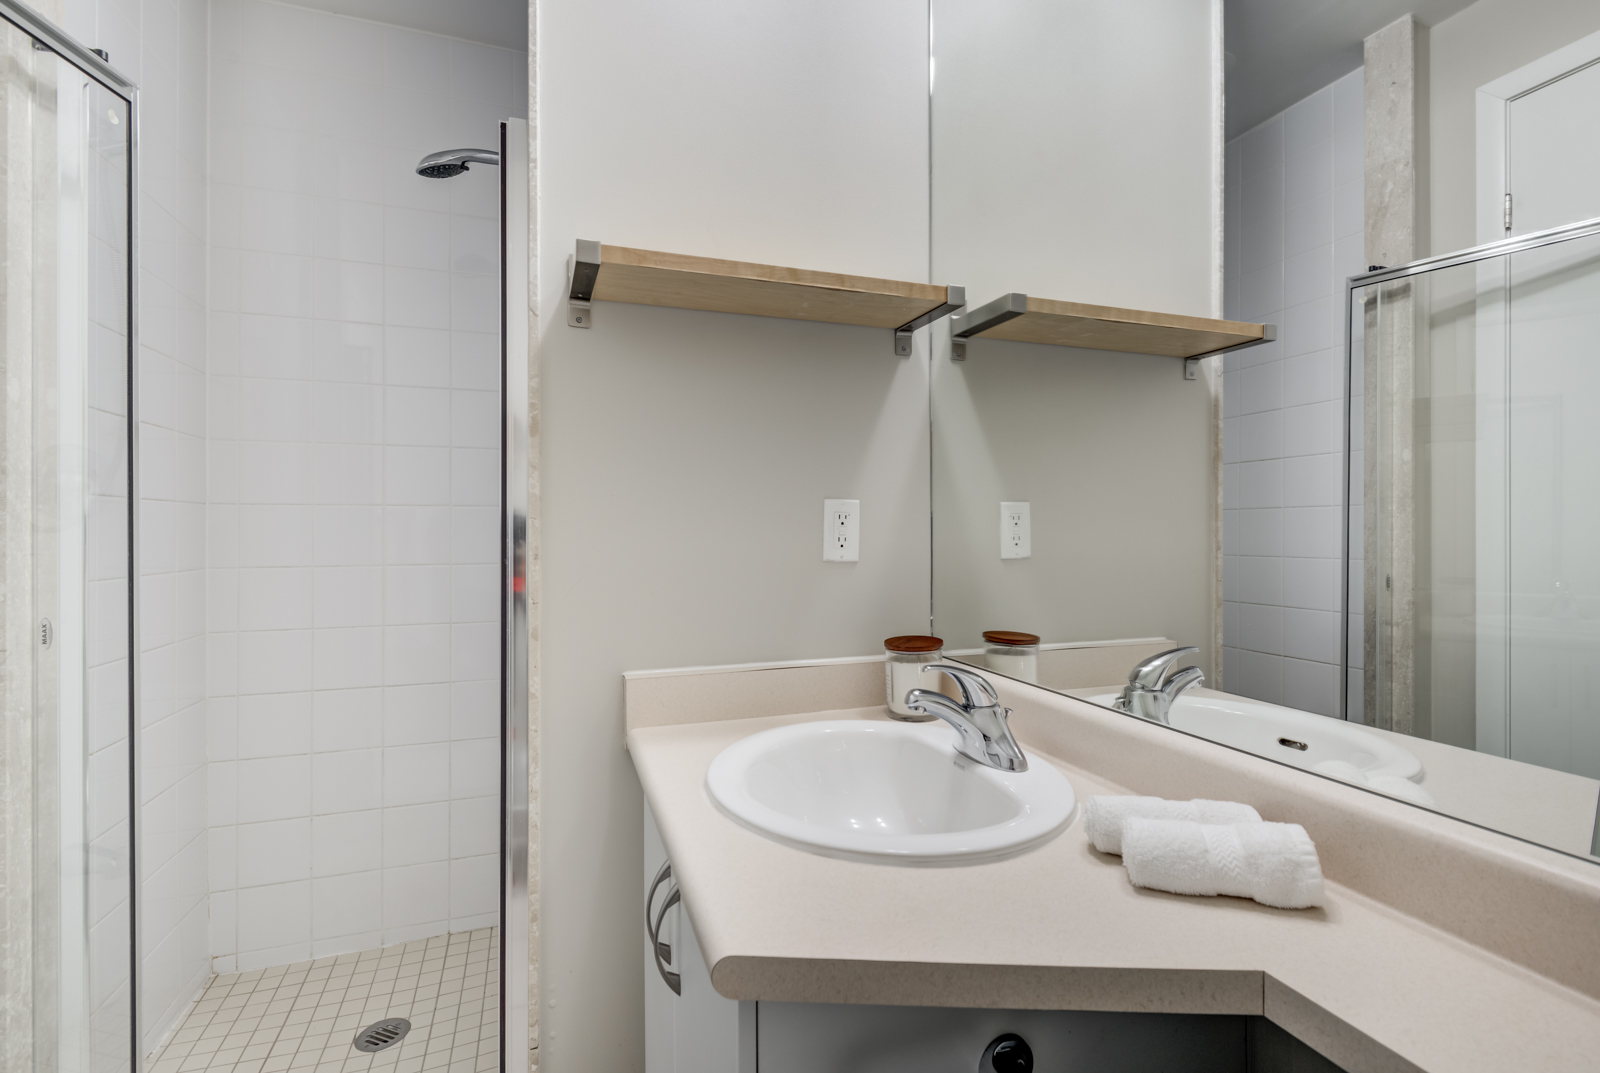 Small bathroom with oval sink, silver faucet, wooden shelf, walk-in shower and large mirror.